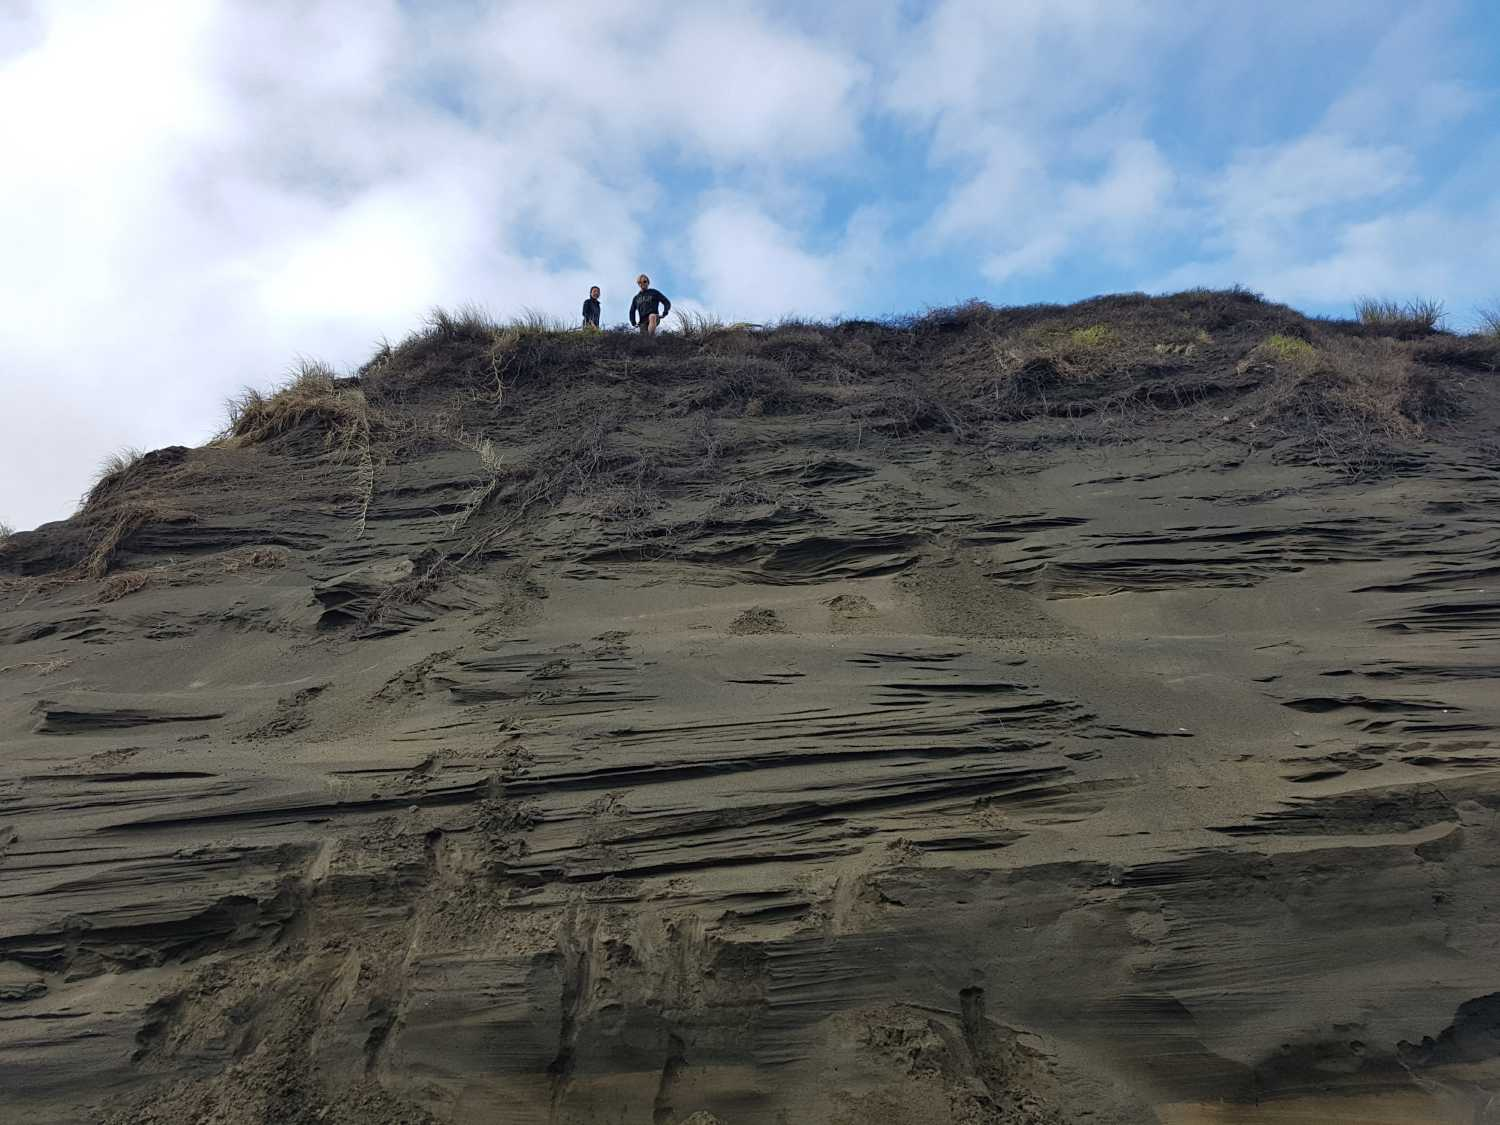 Group explores the sand dunes at Whatipu